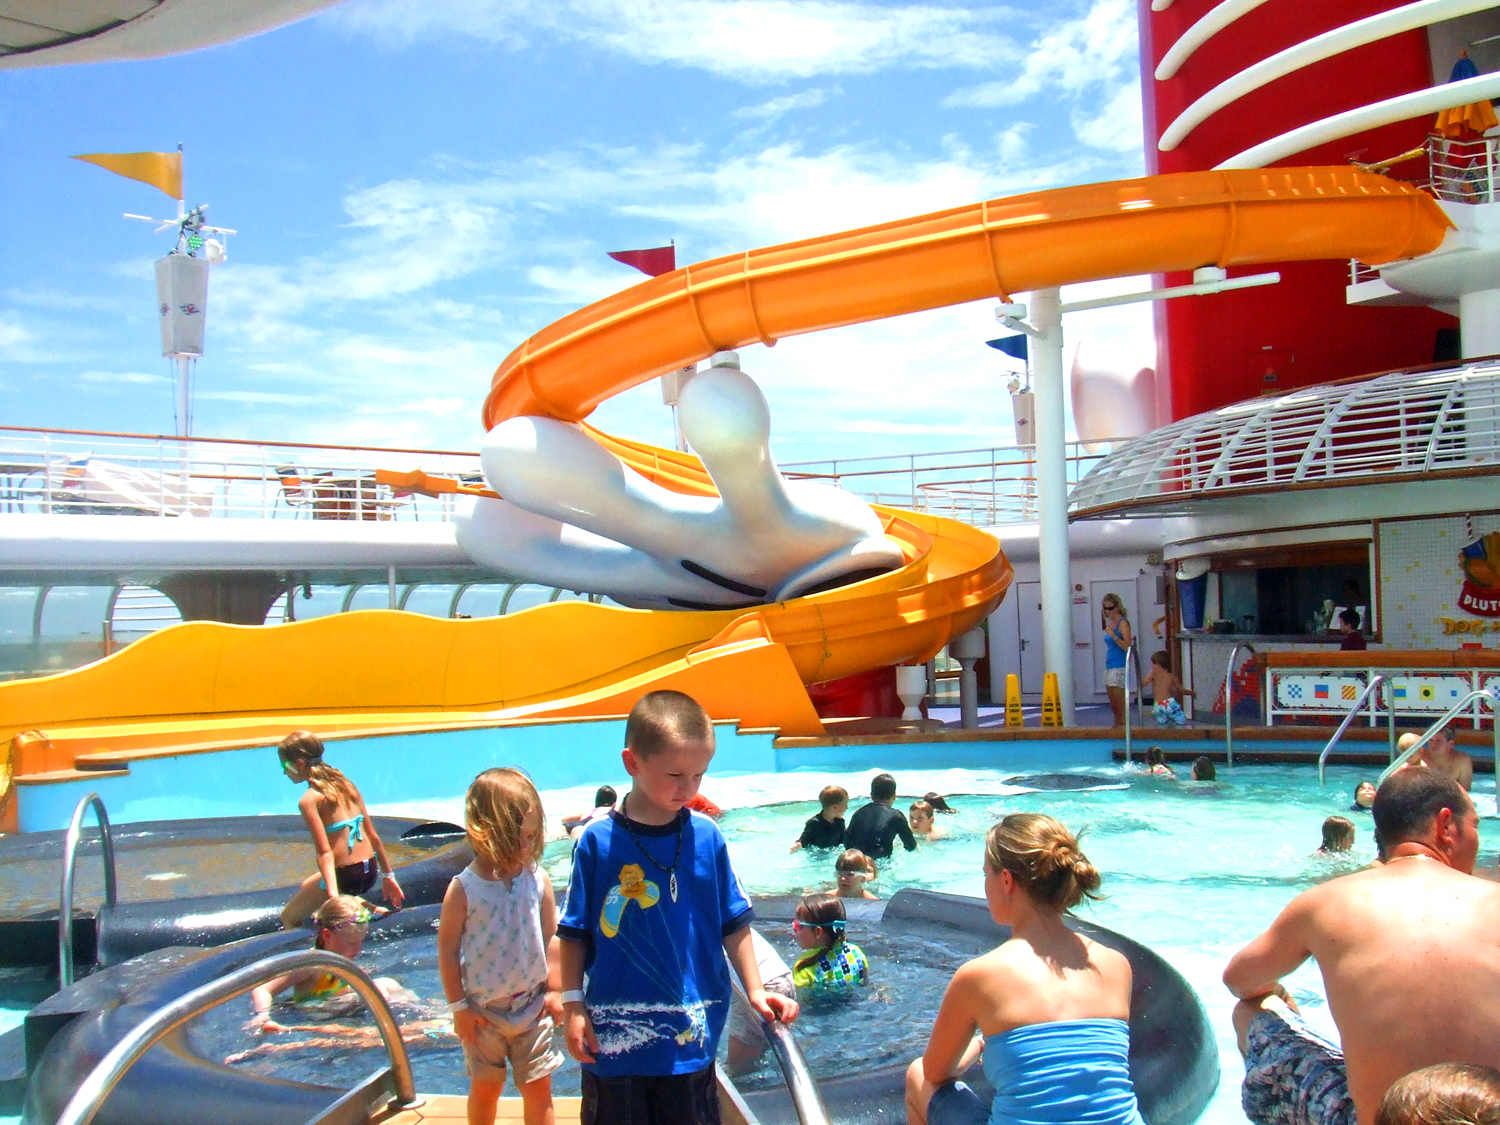 BEST VACATION EVER: The Disney Wonder